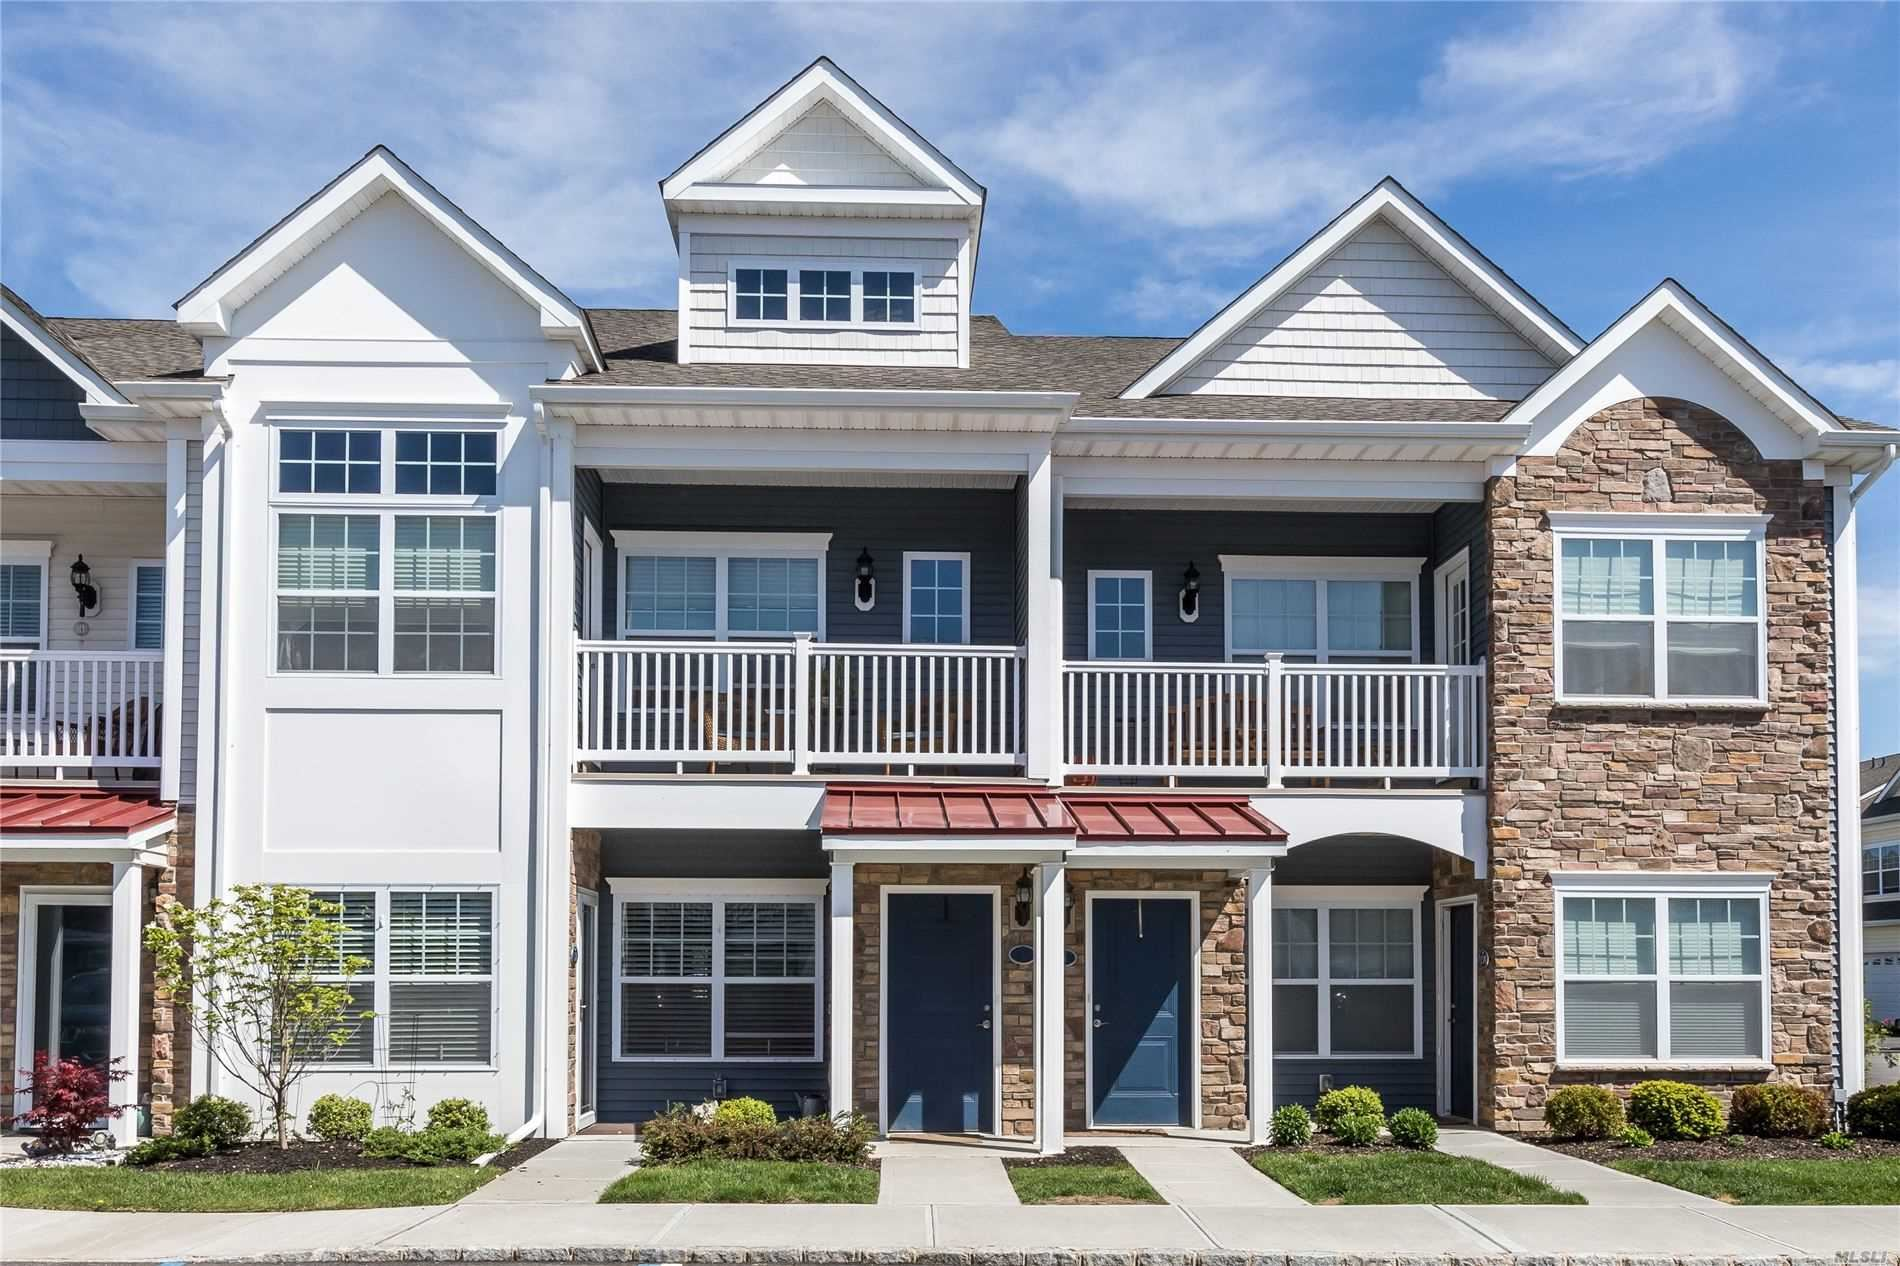 75 Millie Court #75, Patchogue, NY 11772 - MLS#: 3193070